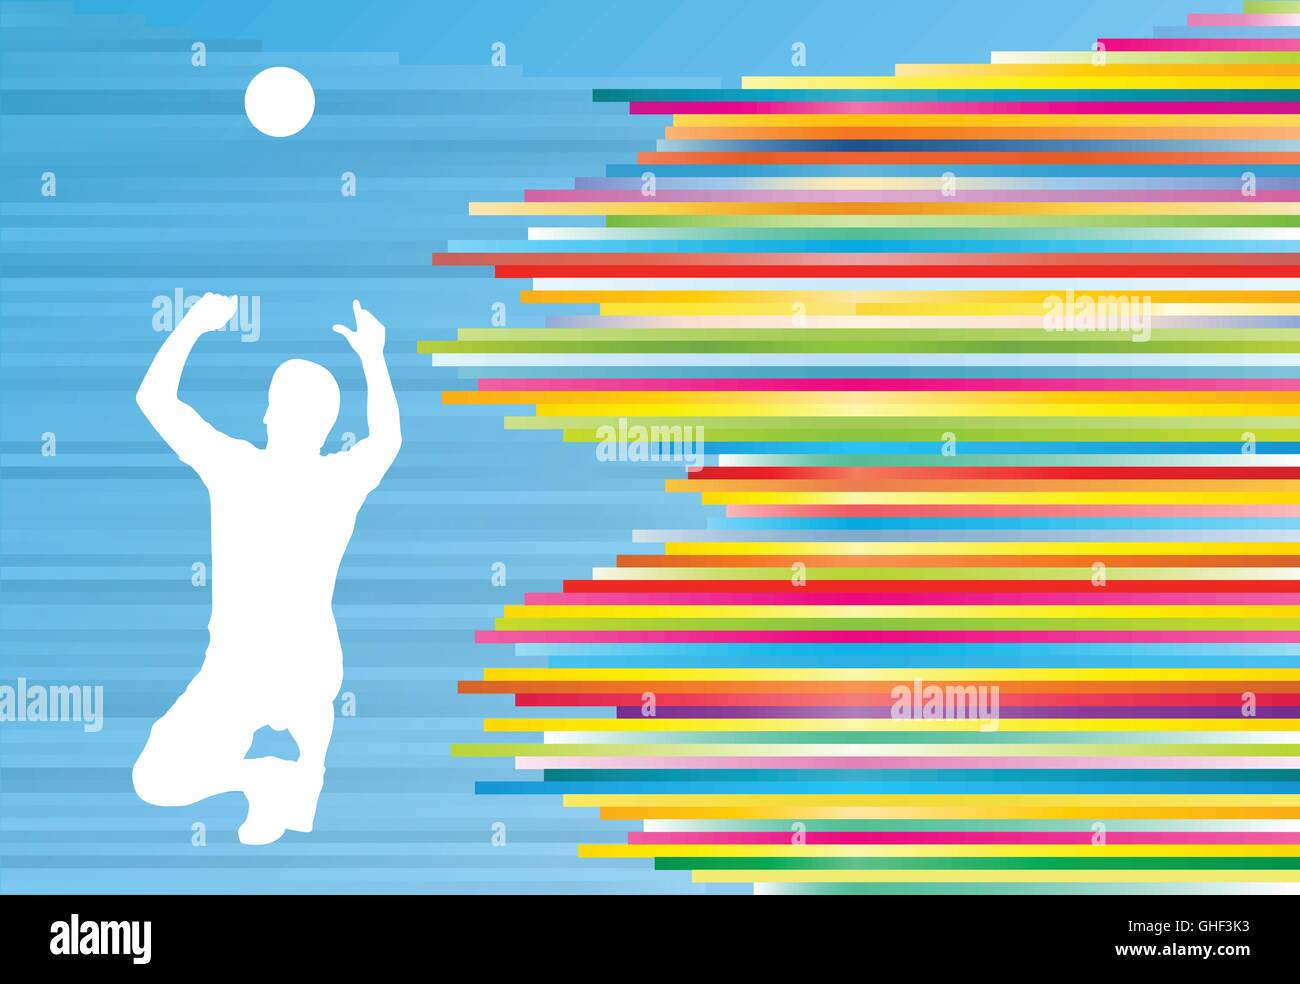 Illustration Abstract Volleyball Player Silhouette: Volleyball Player Man Silhouette Abstract Vector